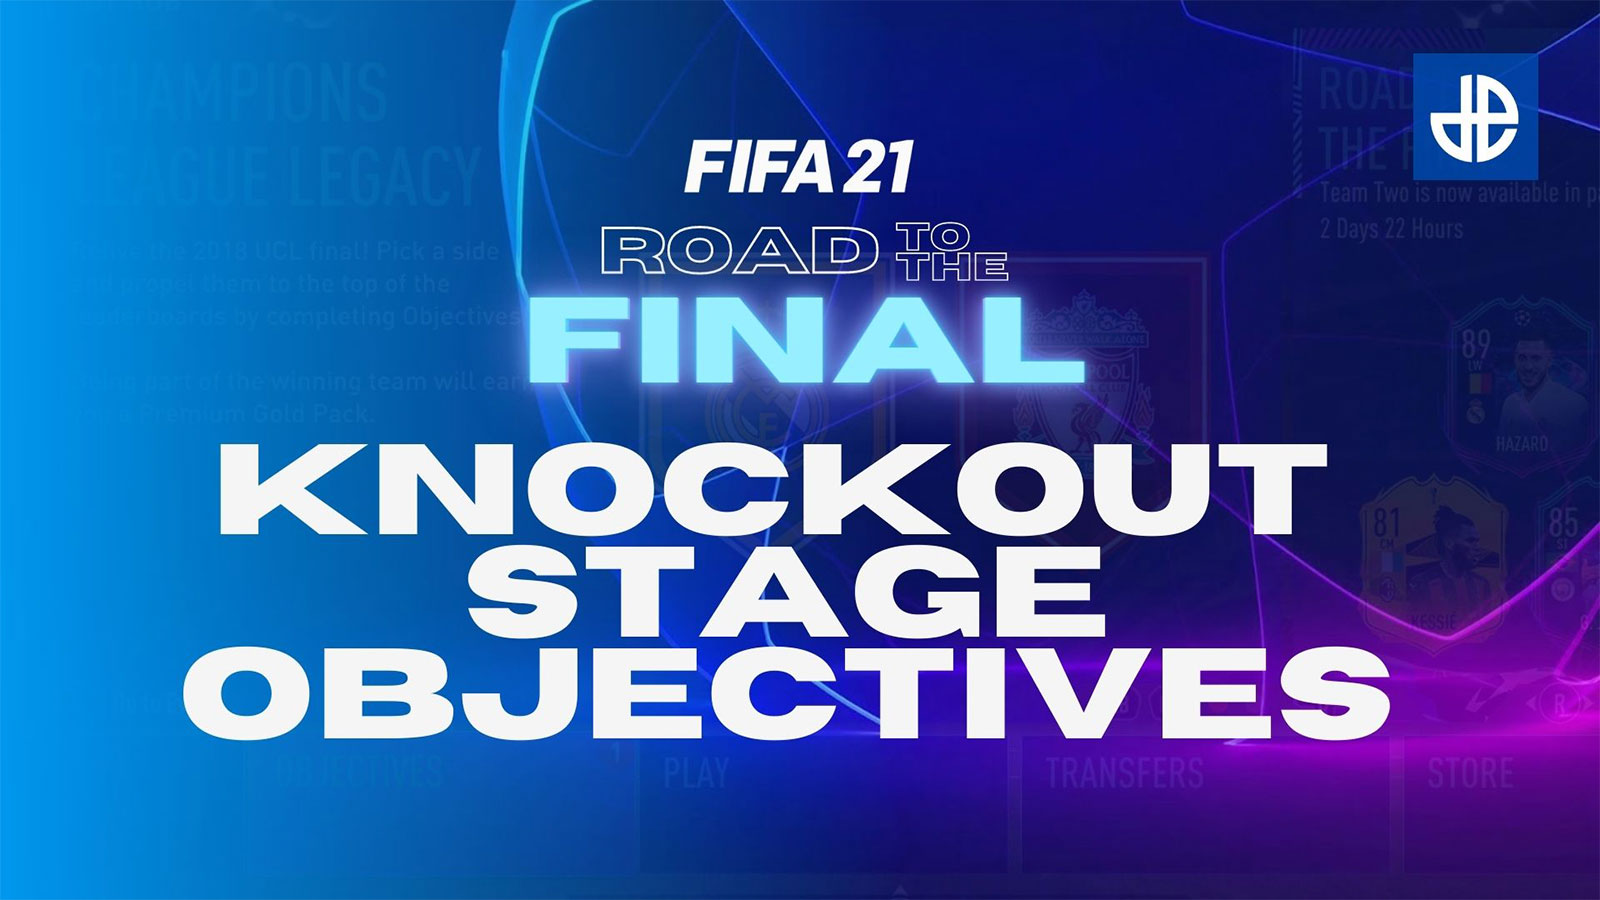 FIFA 21 Knockout Stage Objectives